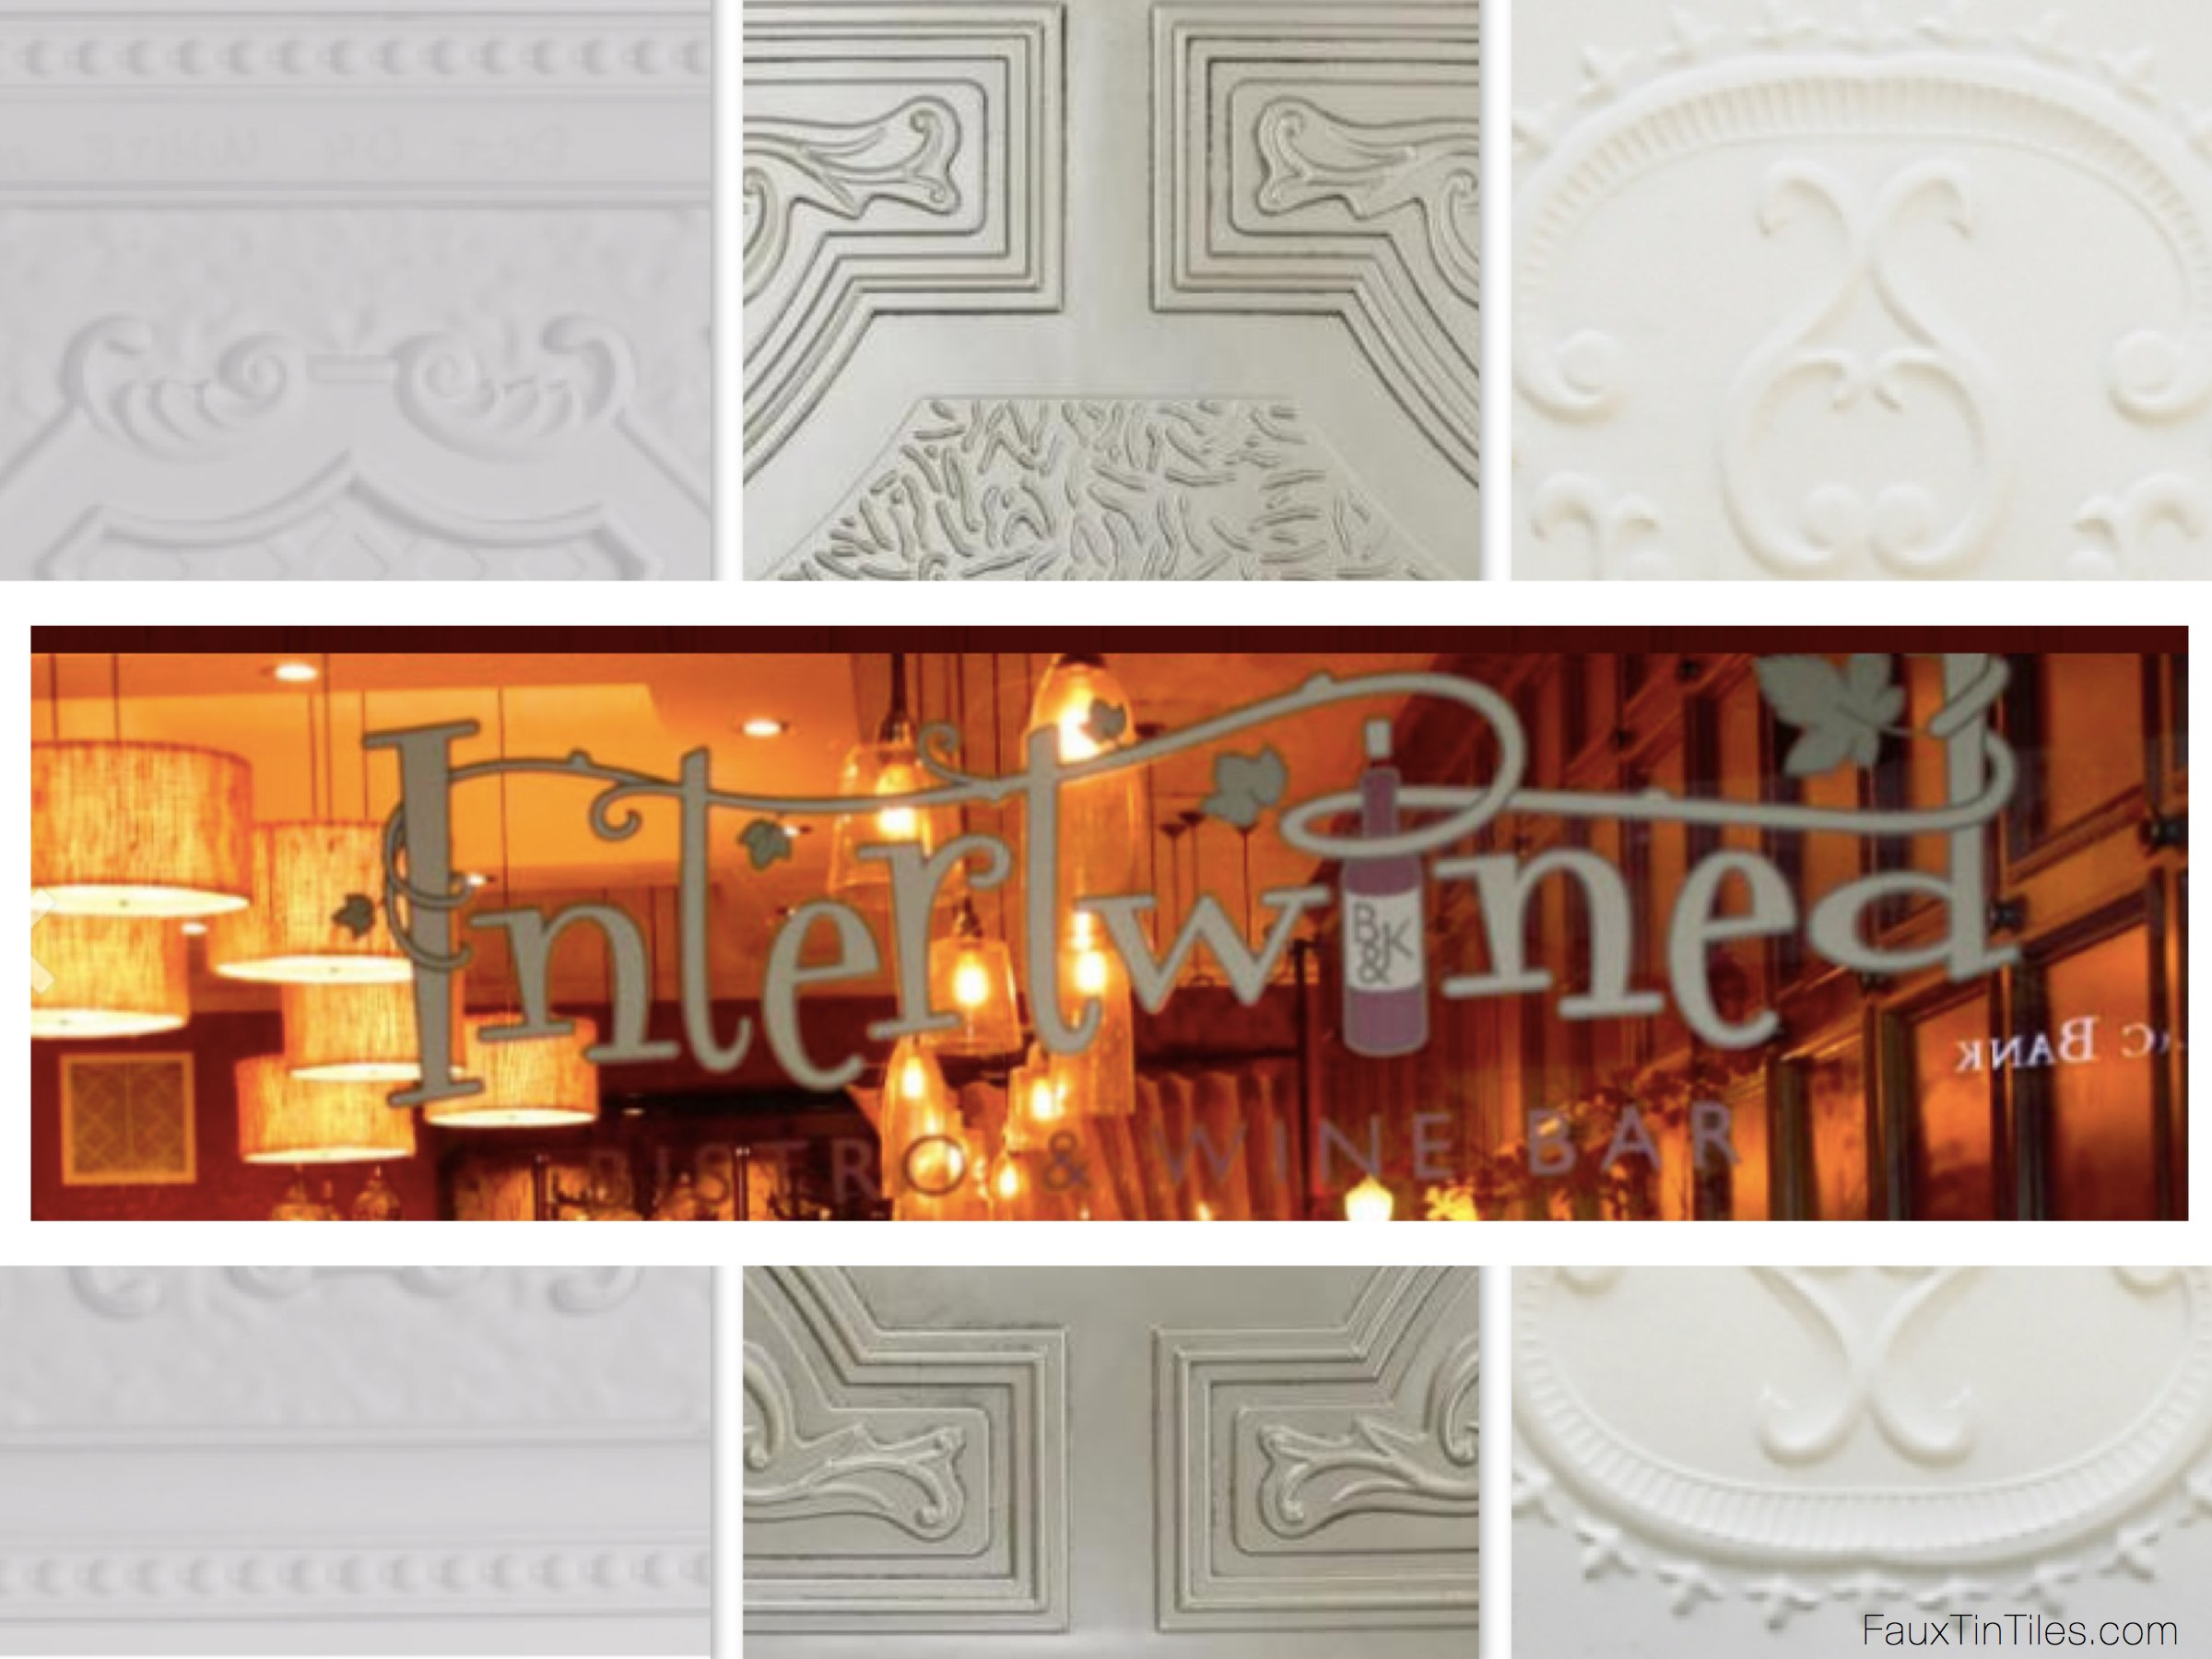 Decorative Ceiing Tiles at Intertwined, Escondido, CA